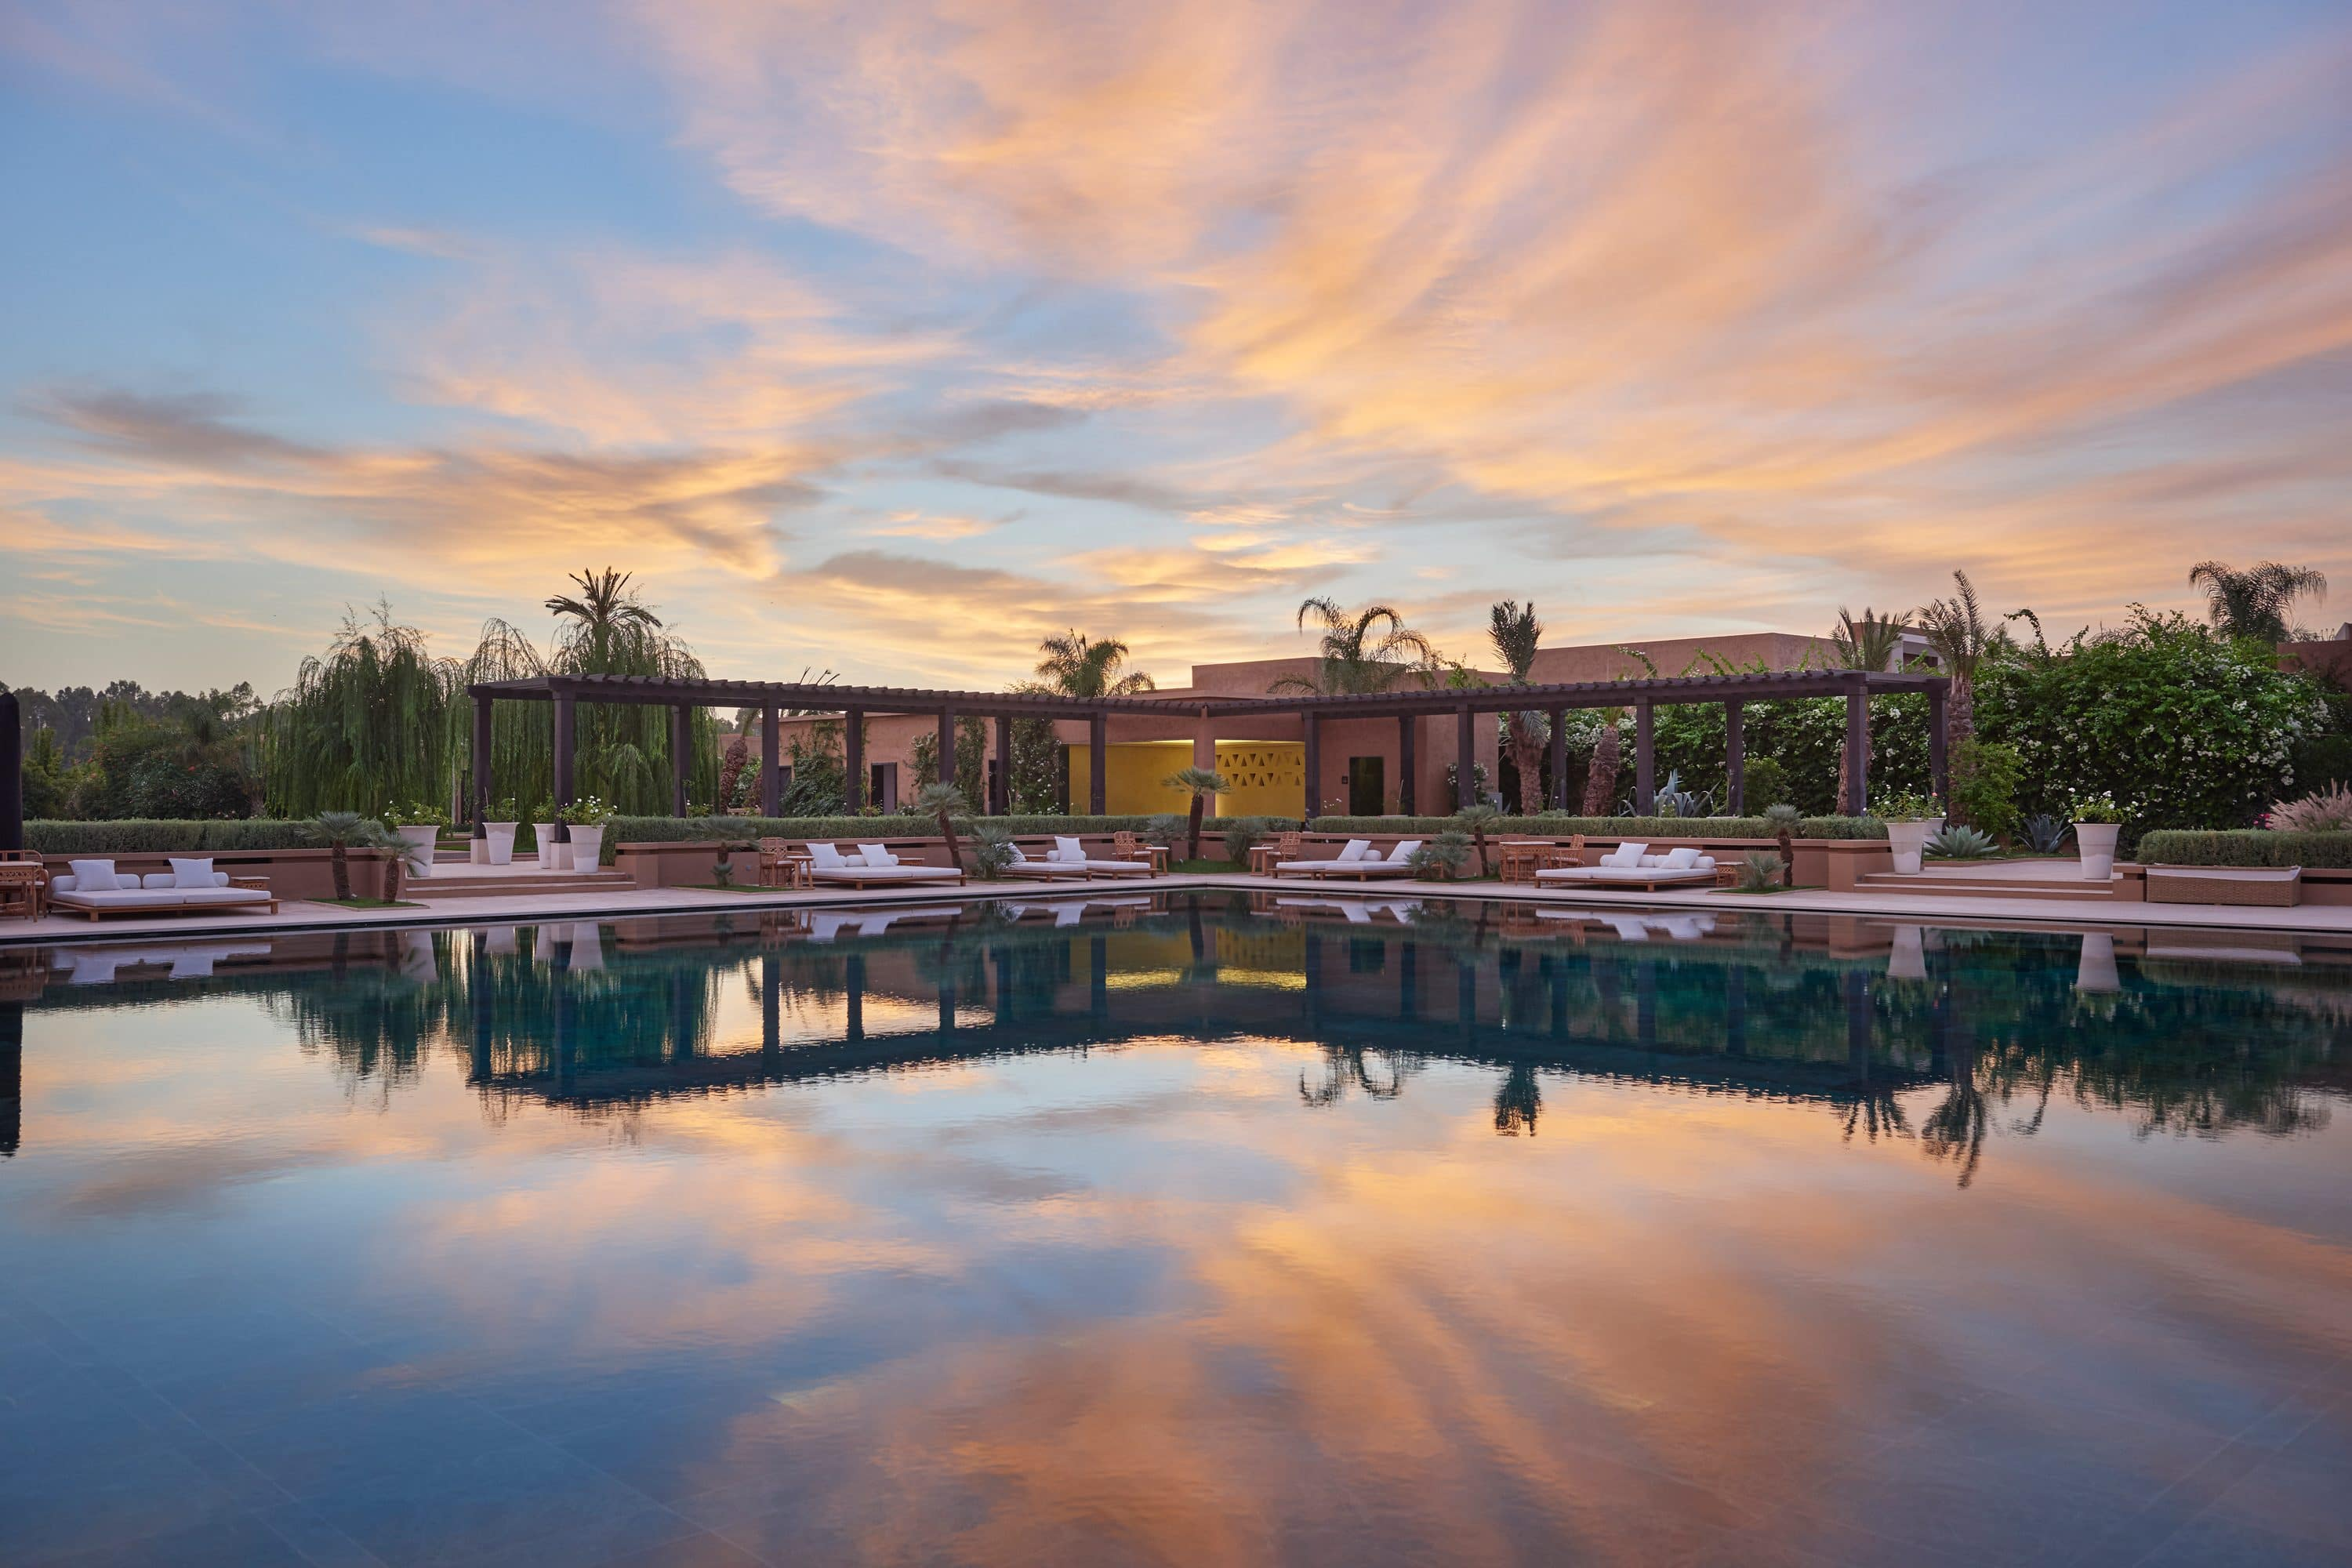 Pool and resort view at sunset at Mandarin Oriental, Marrakech